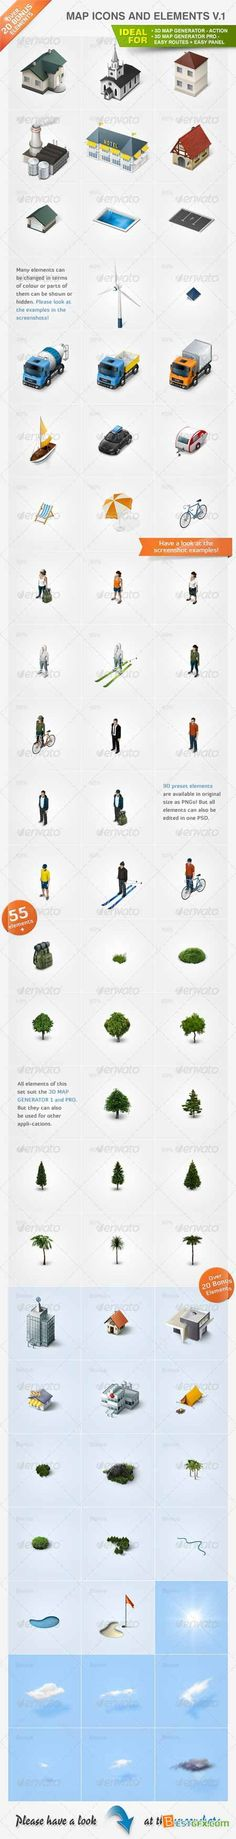 Graphicriver Map Icons and Elements - V.1 1328908